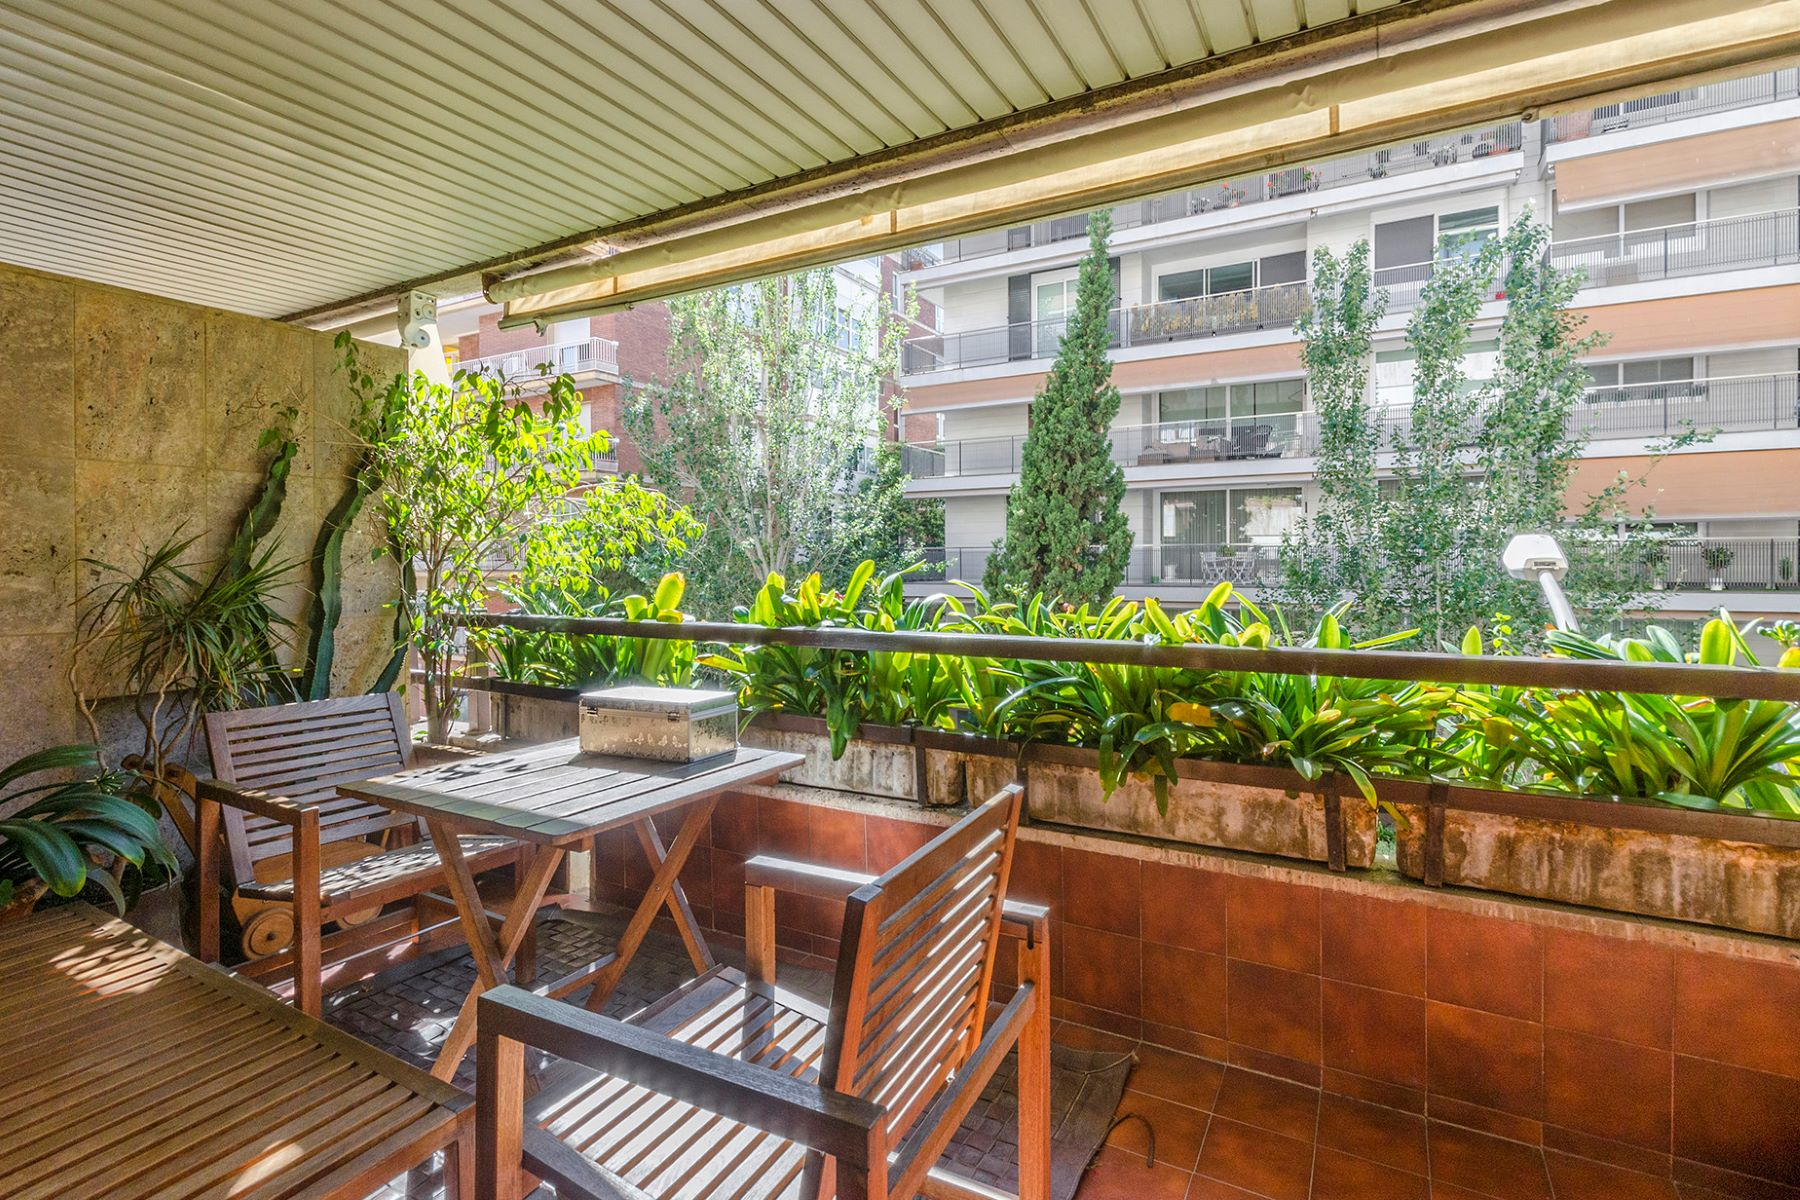 Apartment for Sale at Spacious apartment with terrace located in Turo Park Barcelona City, Barcelona, 08034 Spain